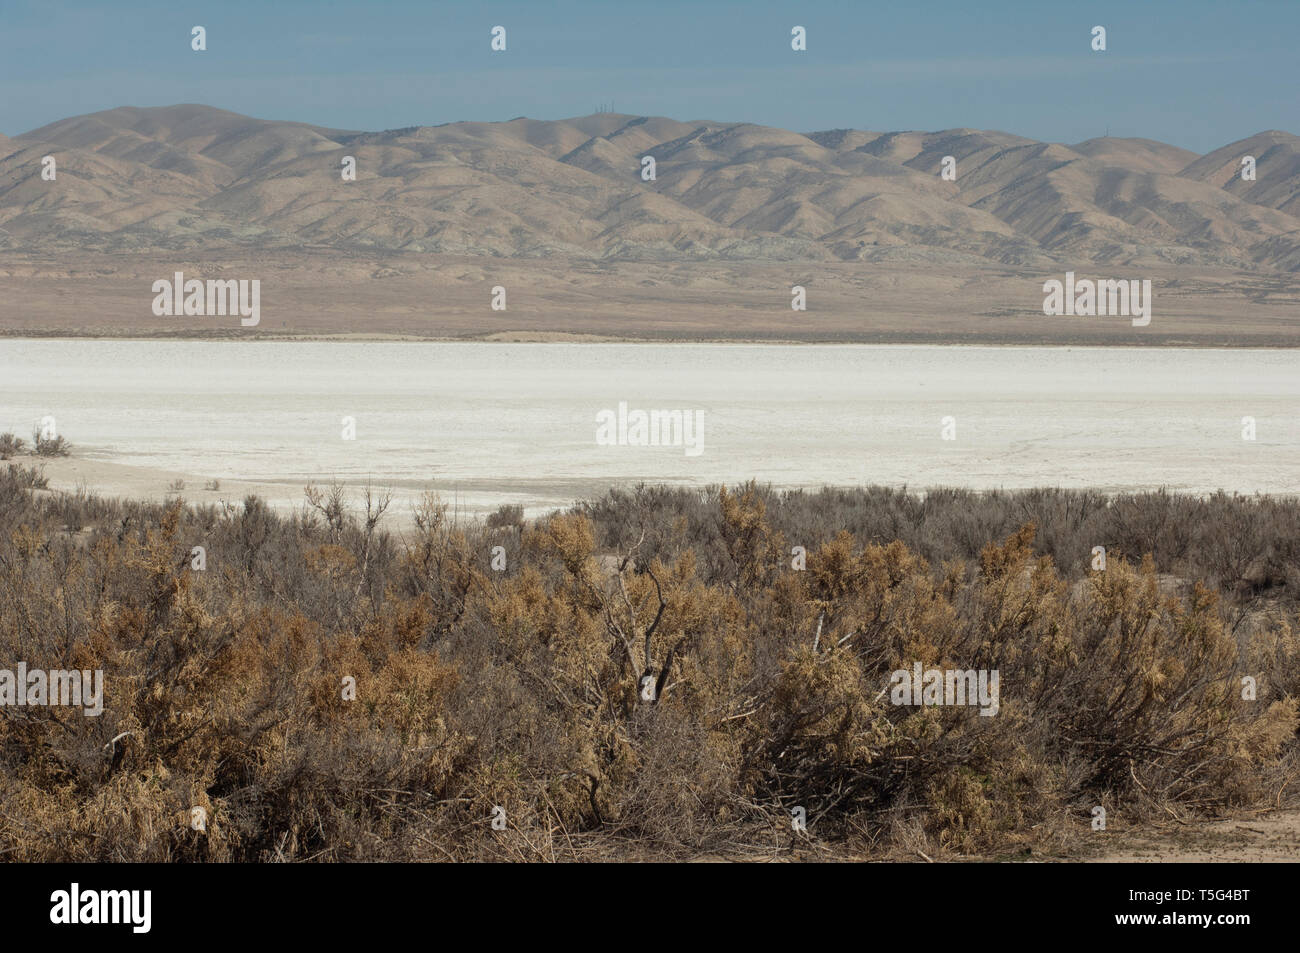 Soda Lake on the San Andreas Fault, Carrizo Plain National Monument, California. Digital photograph - Stock Image